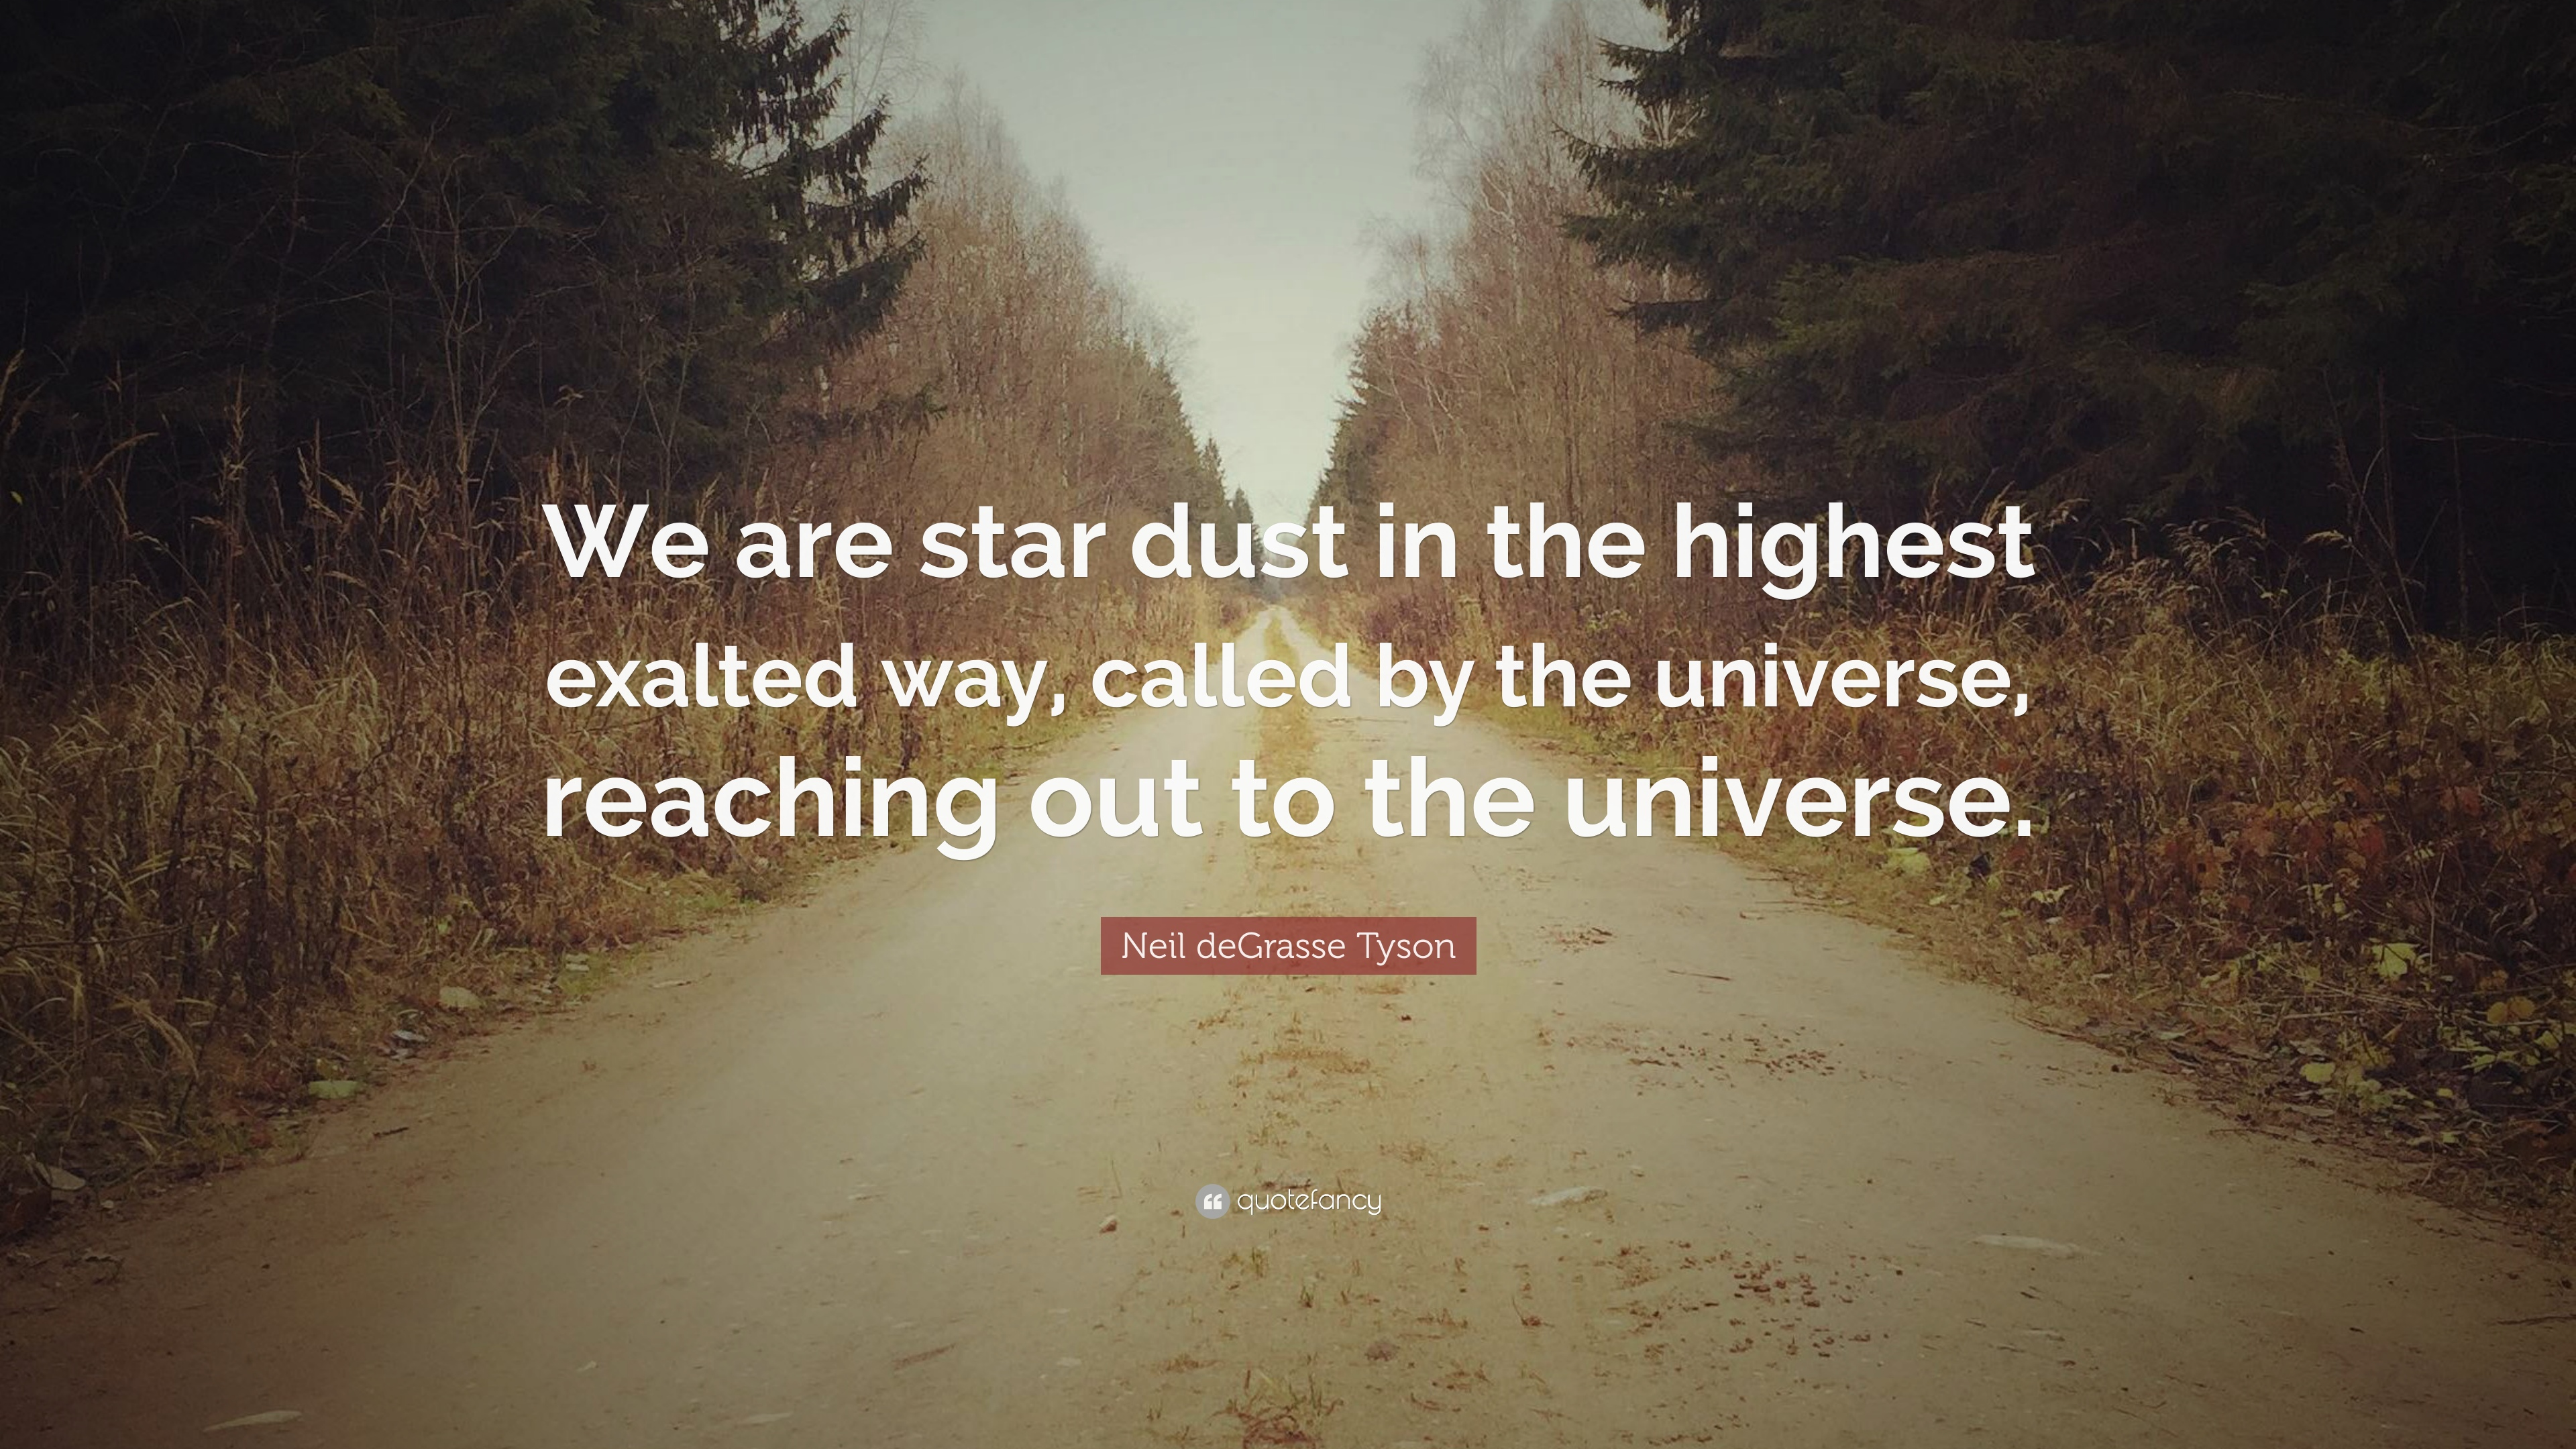 Neil Degrasse Tyson Quote We Are Star Dust In The Highest Exalted